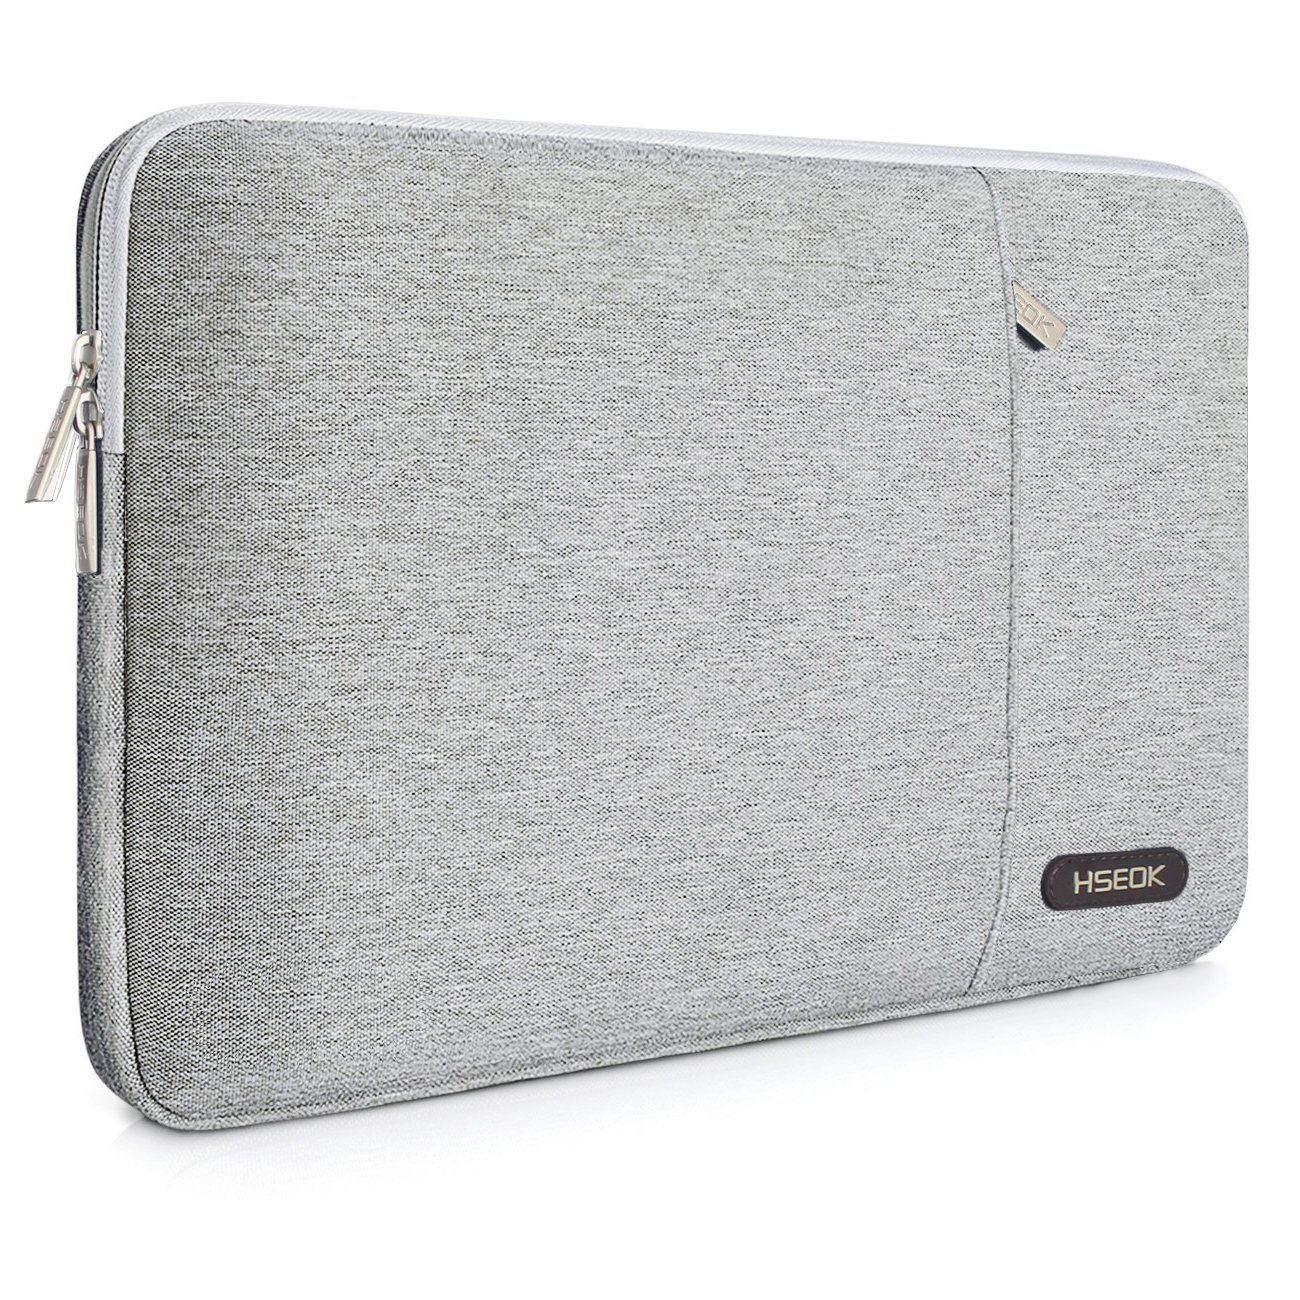 HSEOK 13-13,3 Pulgadas MacBook Air (2015-2017) Funda Protectora para Ordenadores Portátiles PC Bolsa para la mayoría de Las Laptop de 13-14 Pulgadas Surface ...